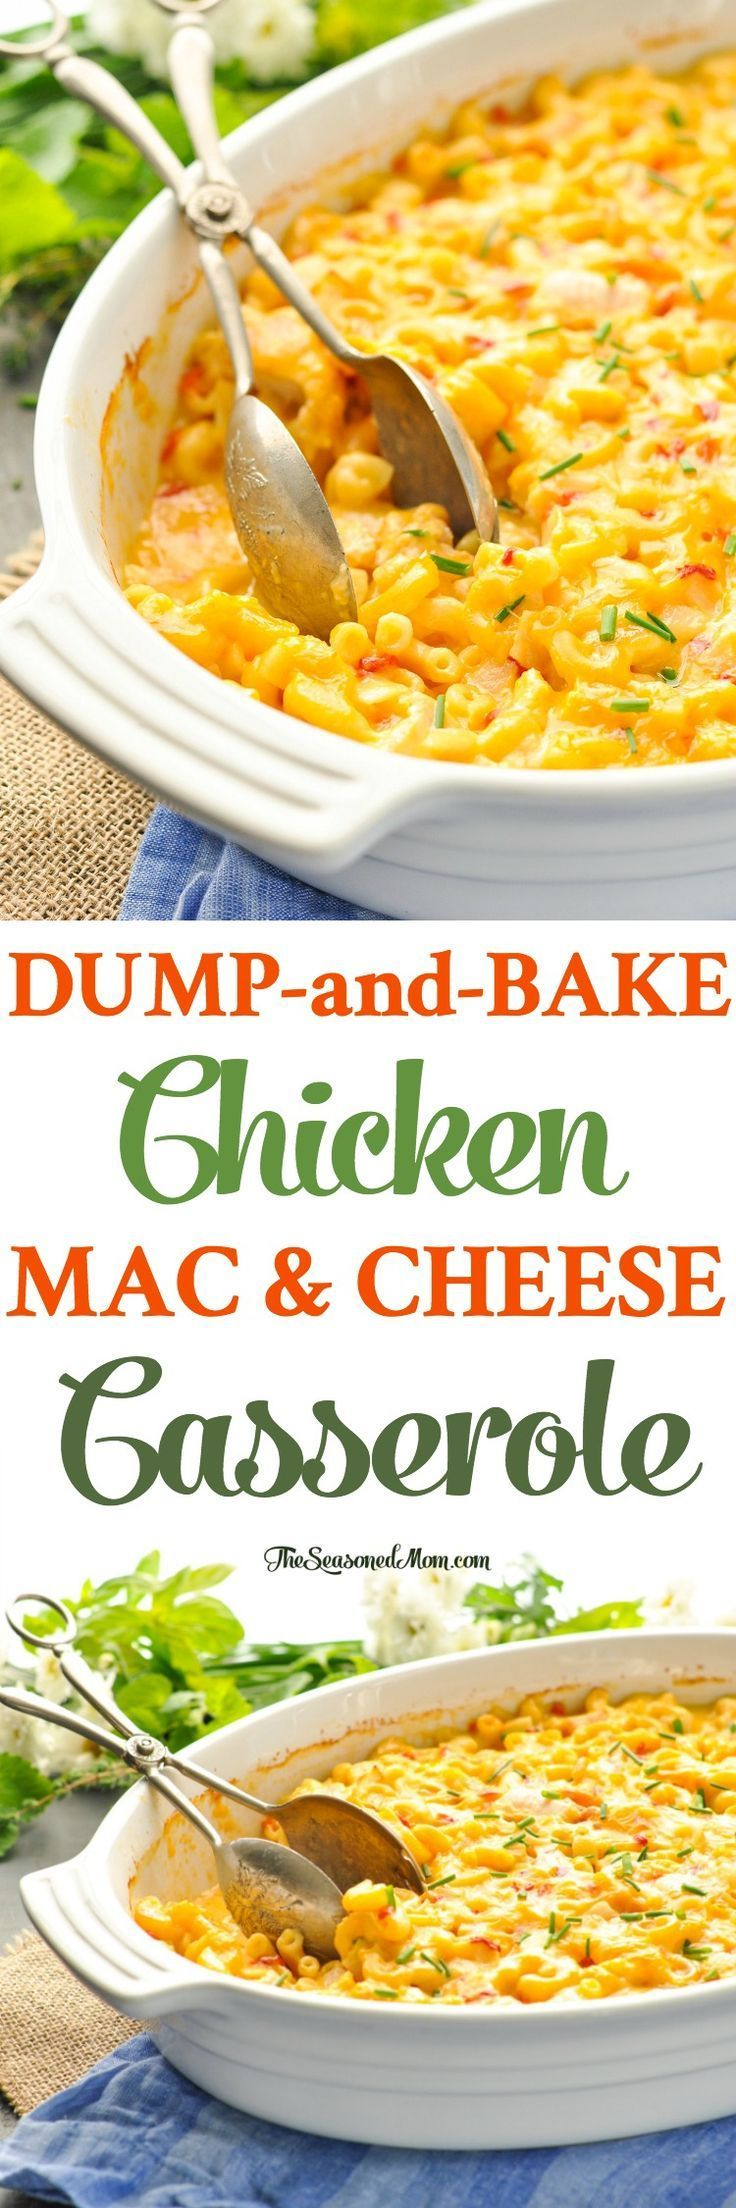 This 10-minute Dump-and-Bake Chicken Mac and Cheese Casserole is a one dish make-ahead dinner recipe that your family will love! Chicken Breast Recipes   Pasta Recipes   Casserole   One Pot Meals #chicken #onepotmeals #pasta #dinner